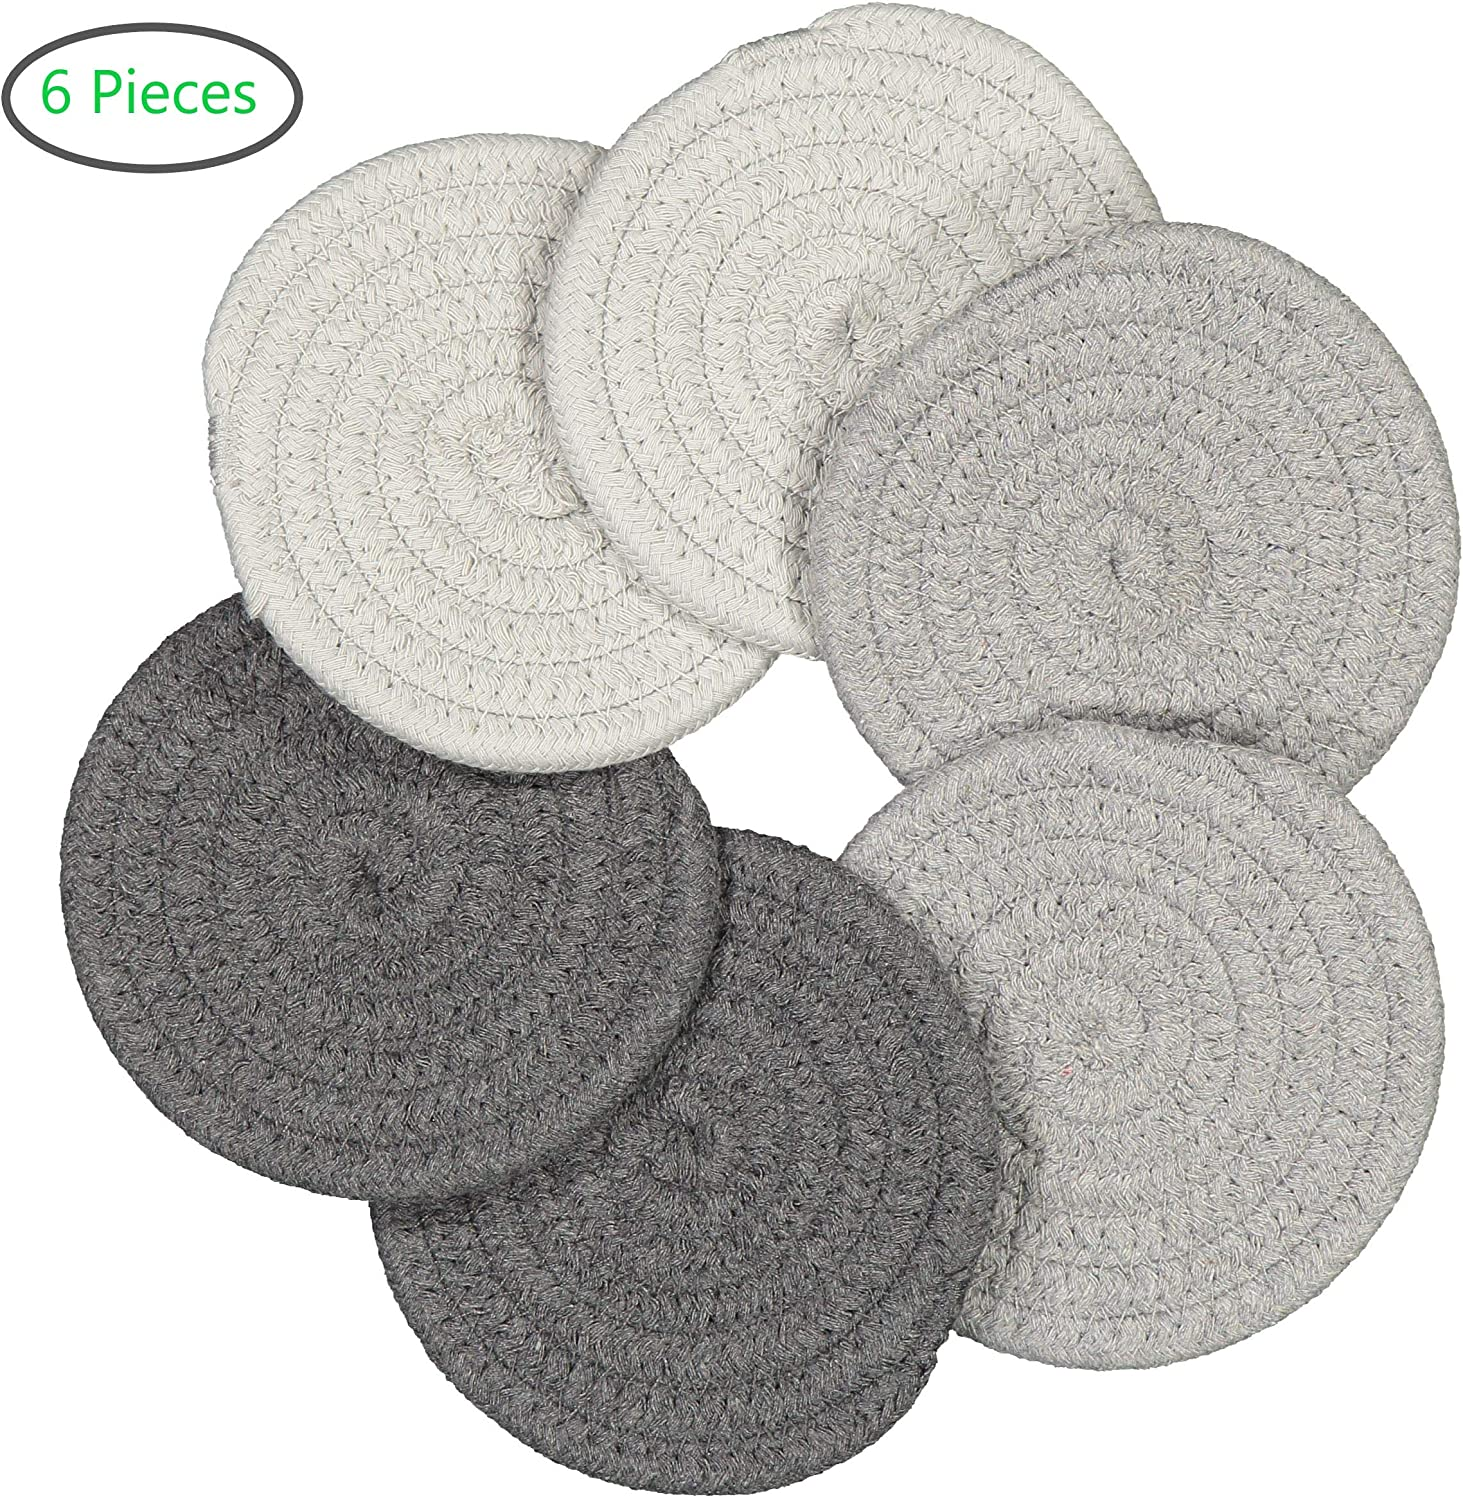 LUMOHOME Braided Drink Coasters, Set of 6, Woven, Super Absorbent, Heat-Resistant, Non-Slip, Table Cup Mat for Drinks, Kitchen, Dining, Grey Shades